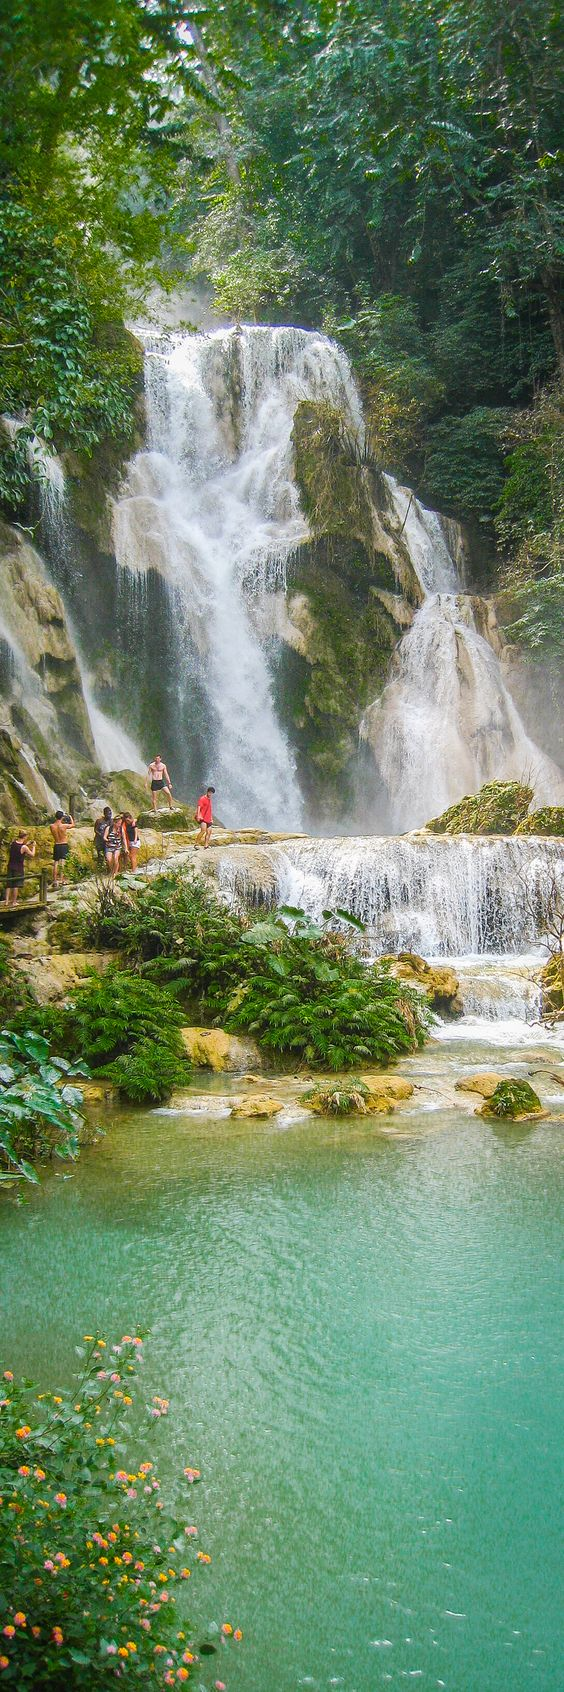 Come see what the Kuang Si Waterfalls are like and find out why you NEED to visit the Kuang Si Falls in Luang Prabang, Laos: you won 't regret teh trip! | Things to do in Luang Prabang | Day trip from Luang Prabang | What to do in Luang Prabang, Laos #Laos #LuangPrabang- via @travelfreak_